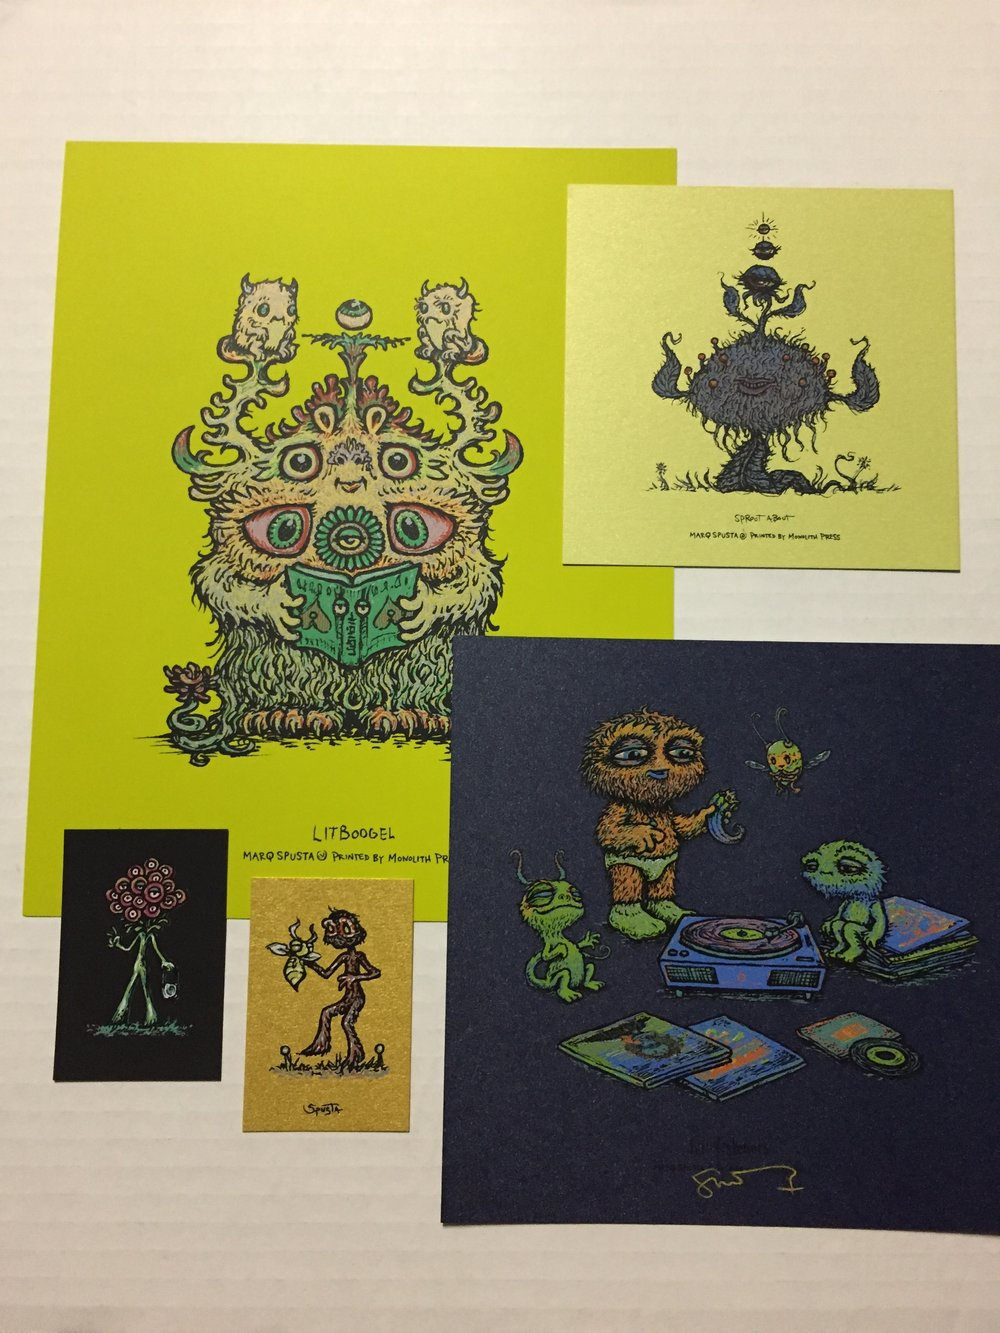 "Absinthe Variant Litboogel 8"" x 10"" + Blue Shimmer Lil Listeners 7"" x 7"" + minis pictured"